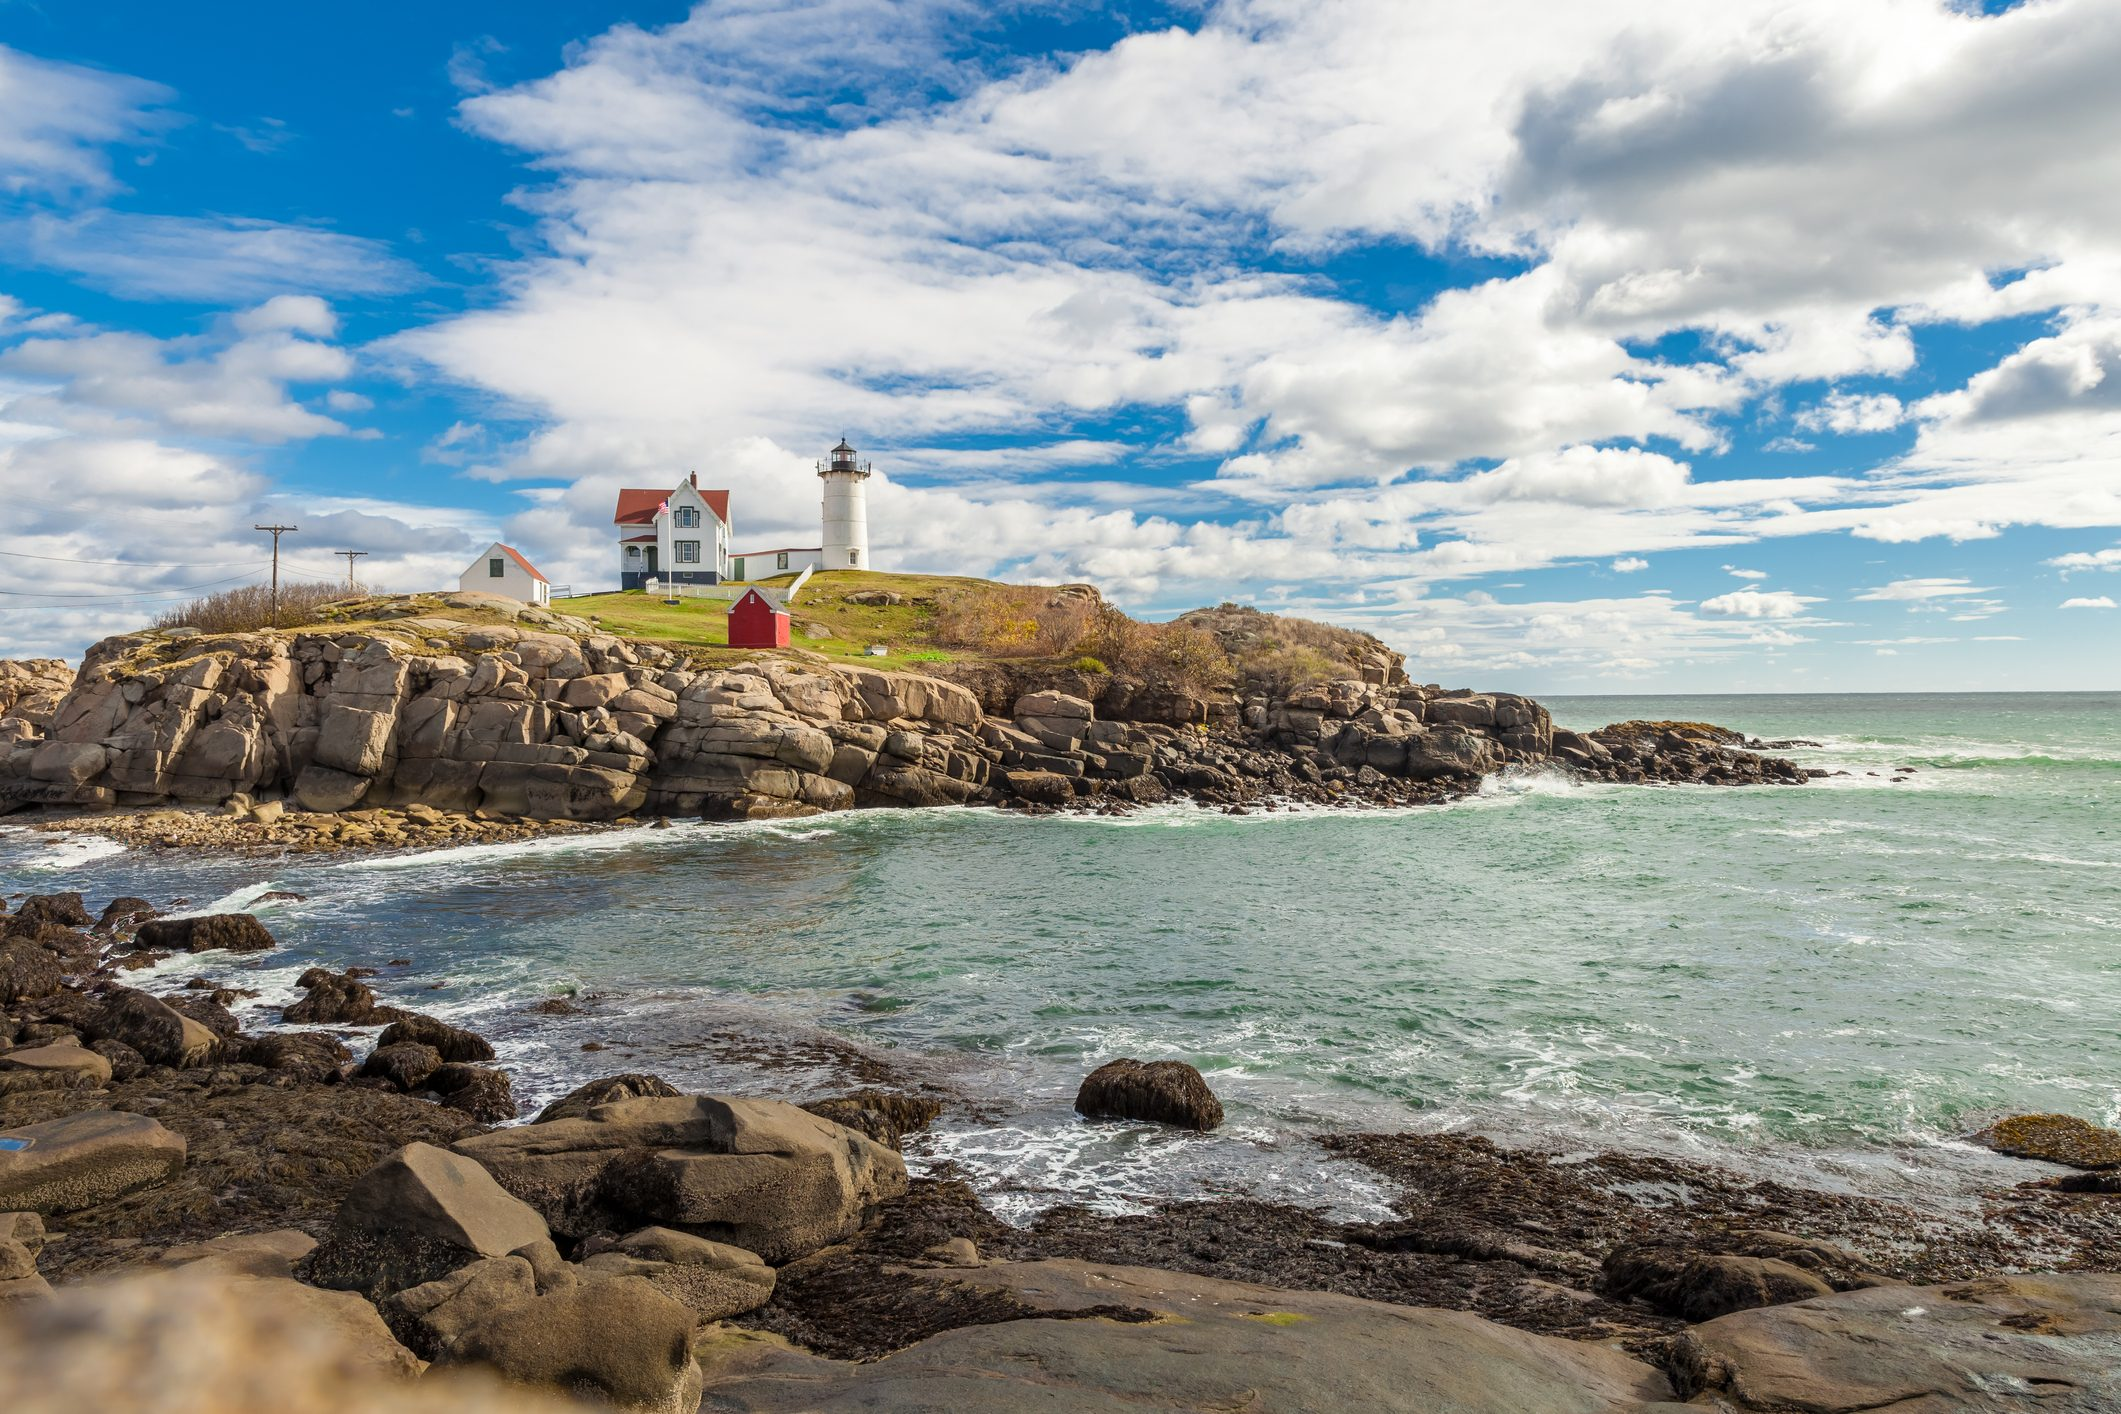 Nubble Lighthouse in Maine - New England